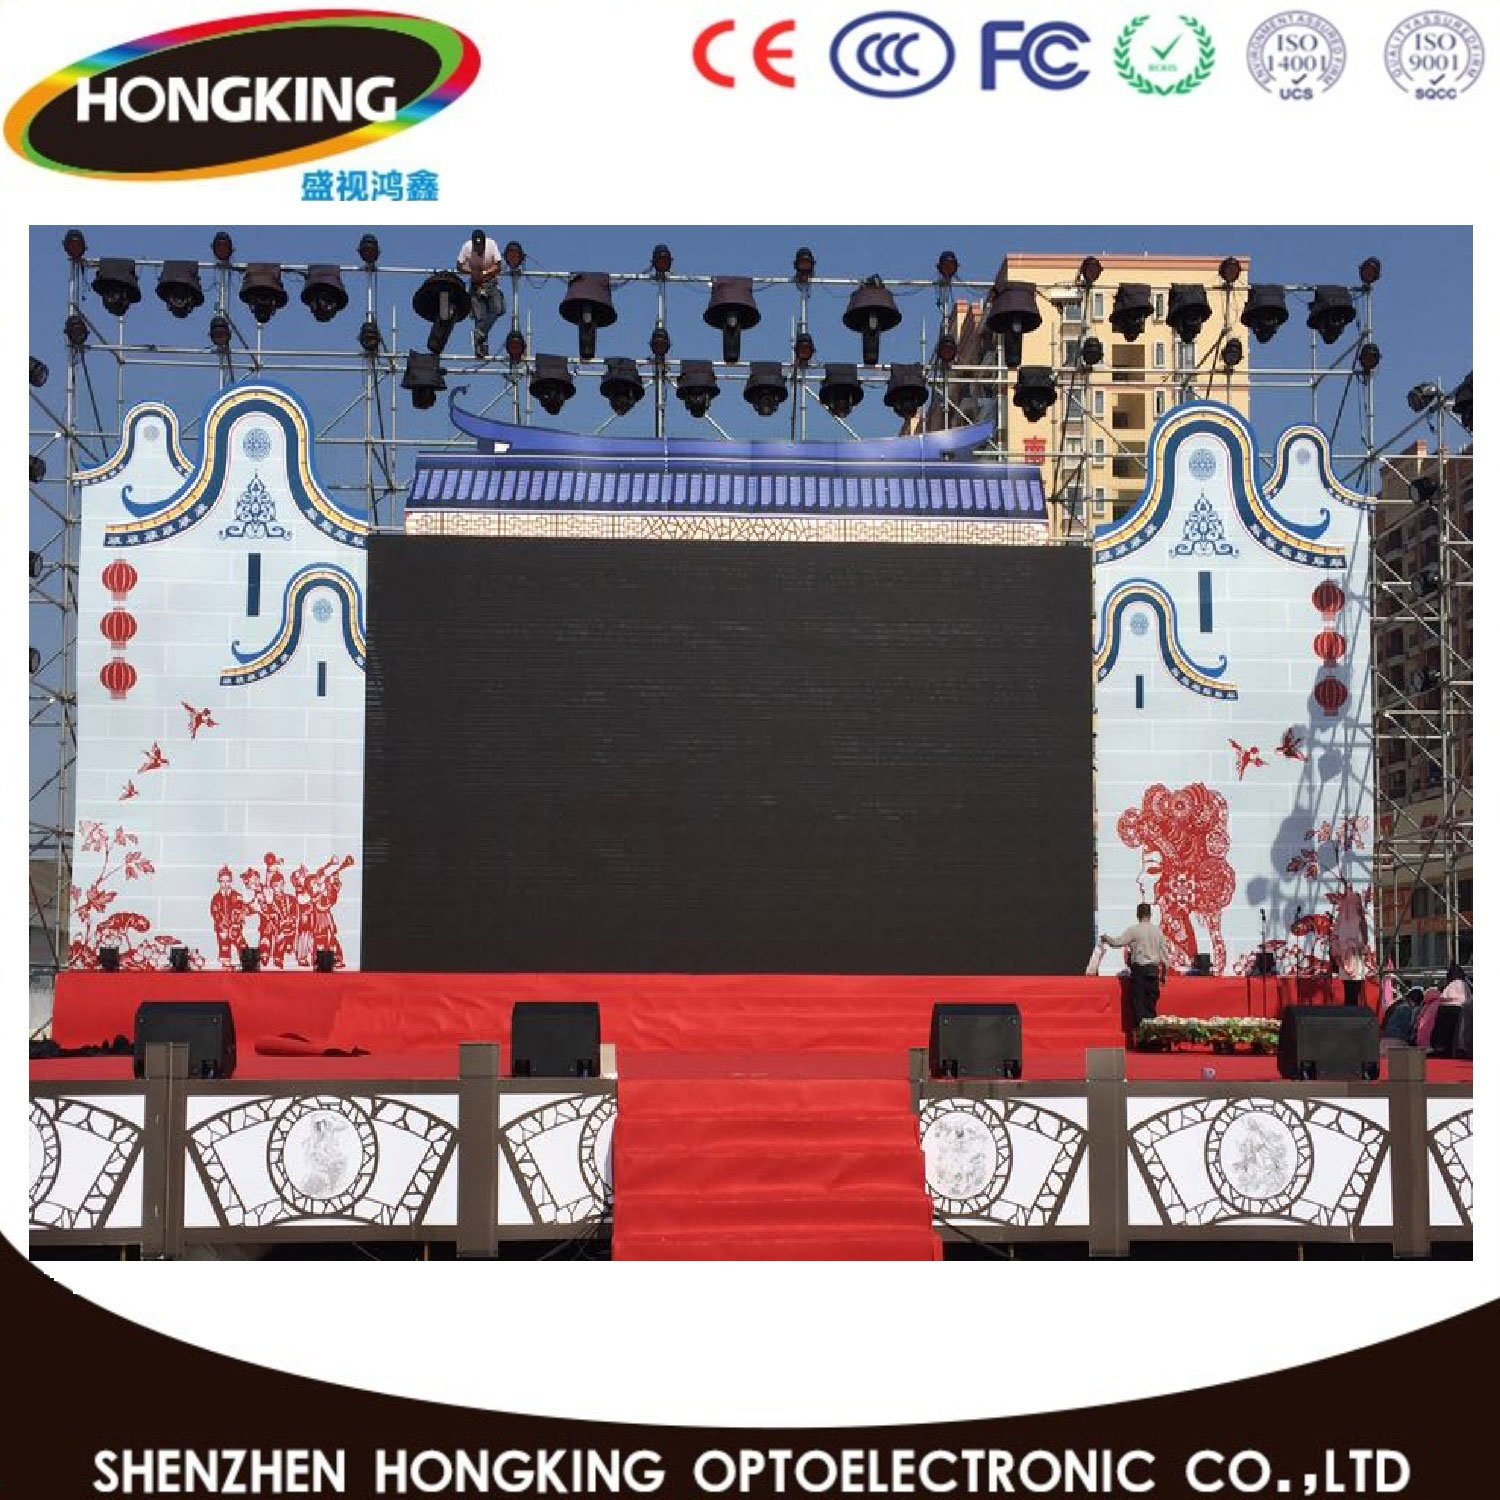 Hot Sale P4.81 Full Color LED Display LED Video Wall